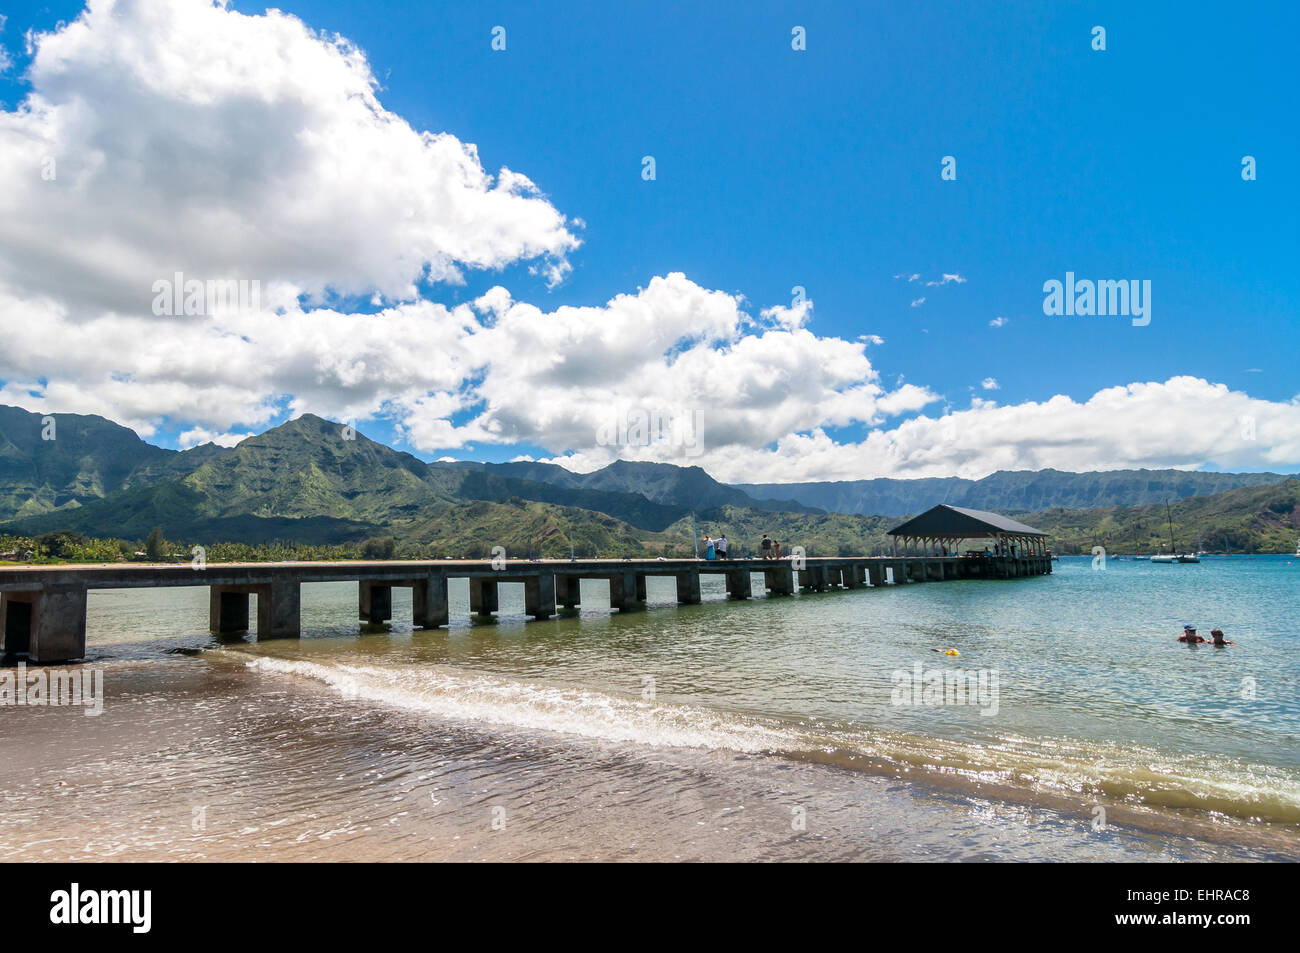 Kauai, HI, USA - August 31, 2013: tourists on Pier and bathing in Hanalei Bay, Kauai Island (Hawaii) - Stock Image